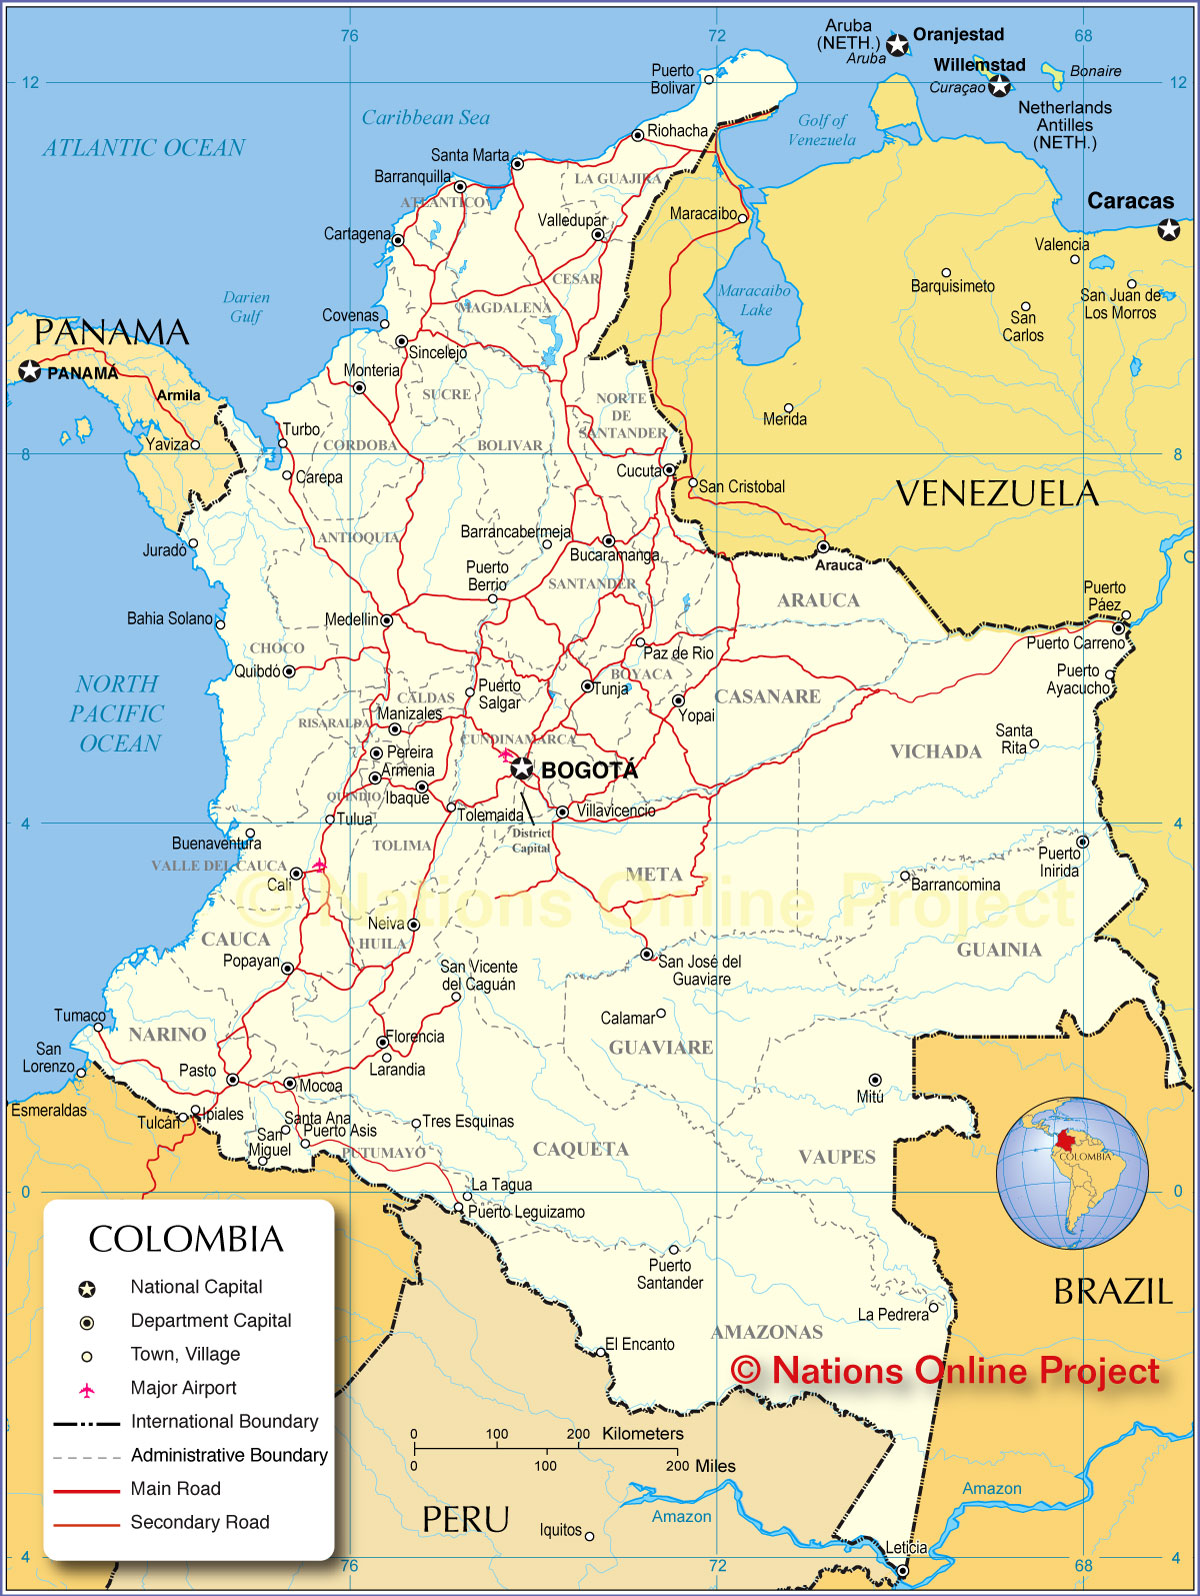 Maps De Colombia Map of Colombia   Nations Online Project